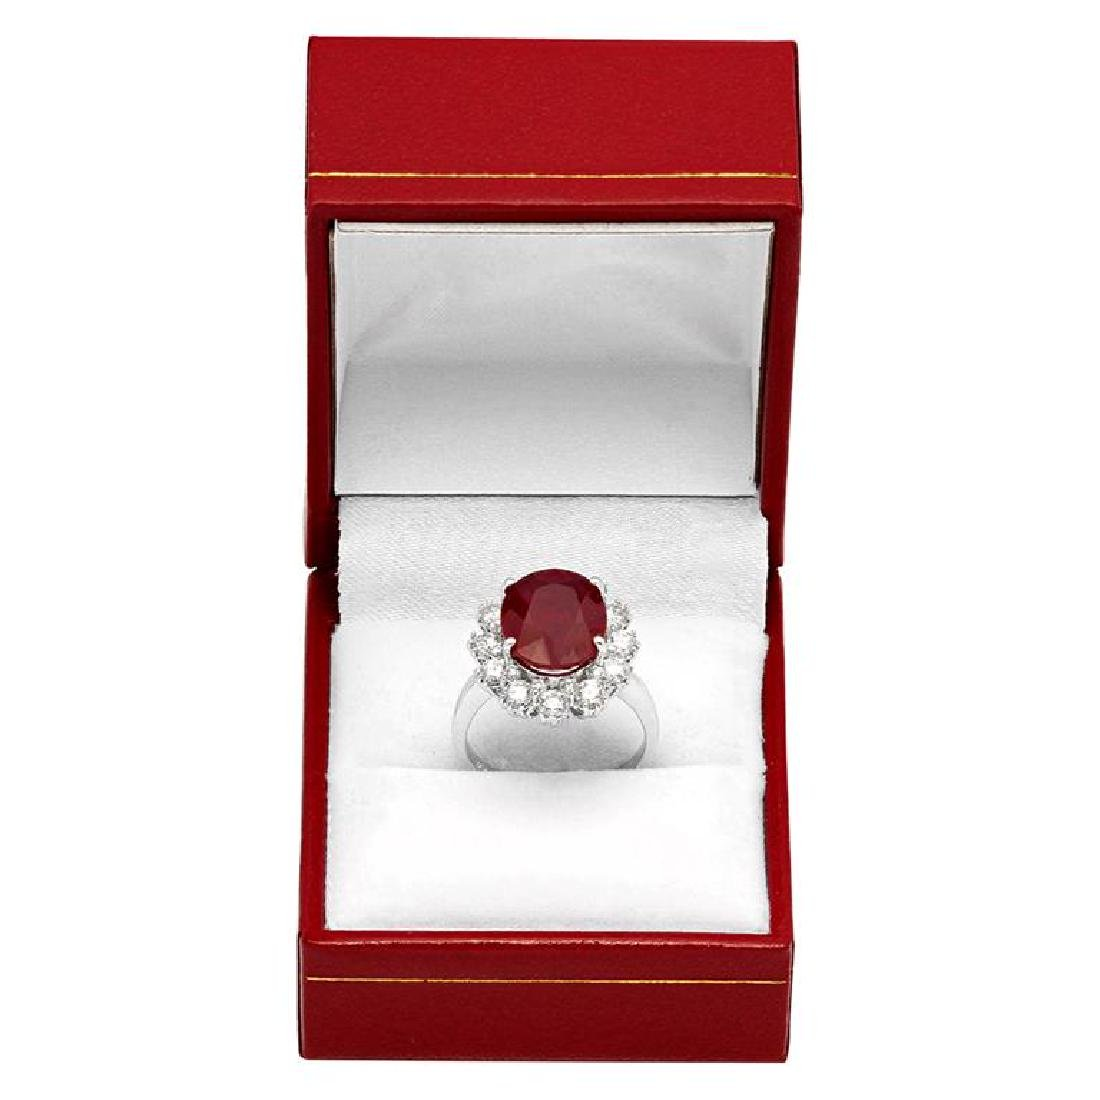 14k White Gold 6.15ct Ruby 1.44ct Diamond Ring - 4